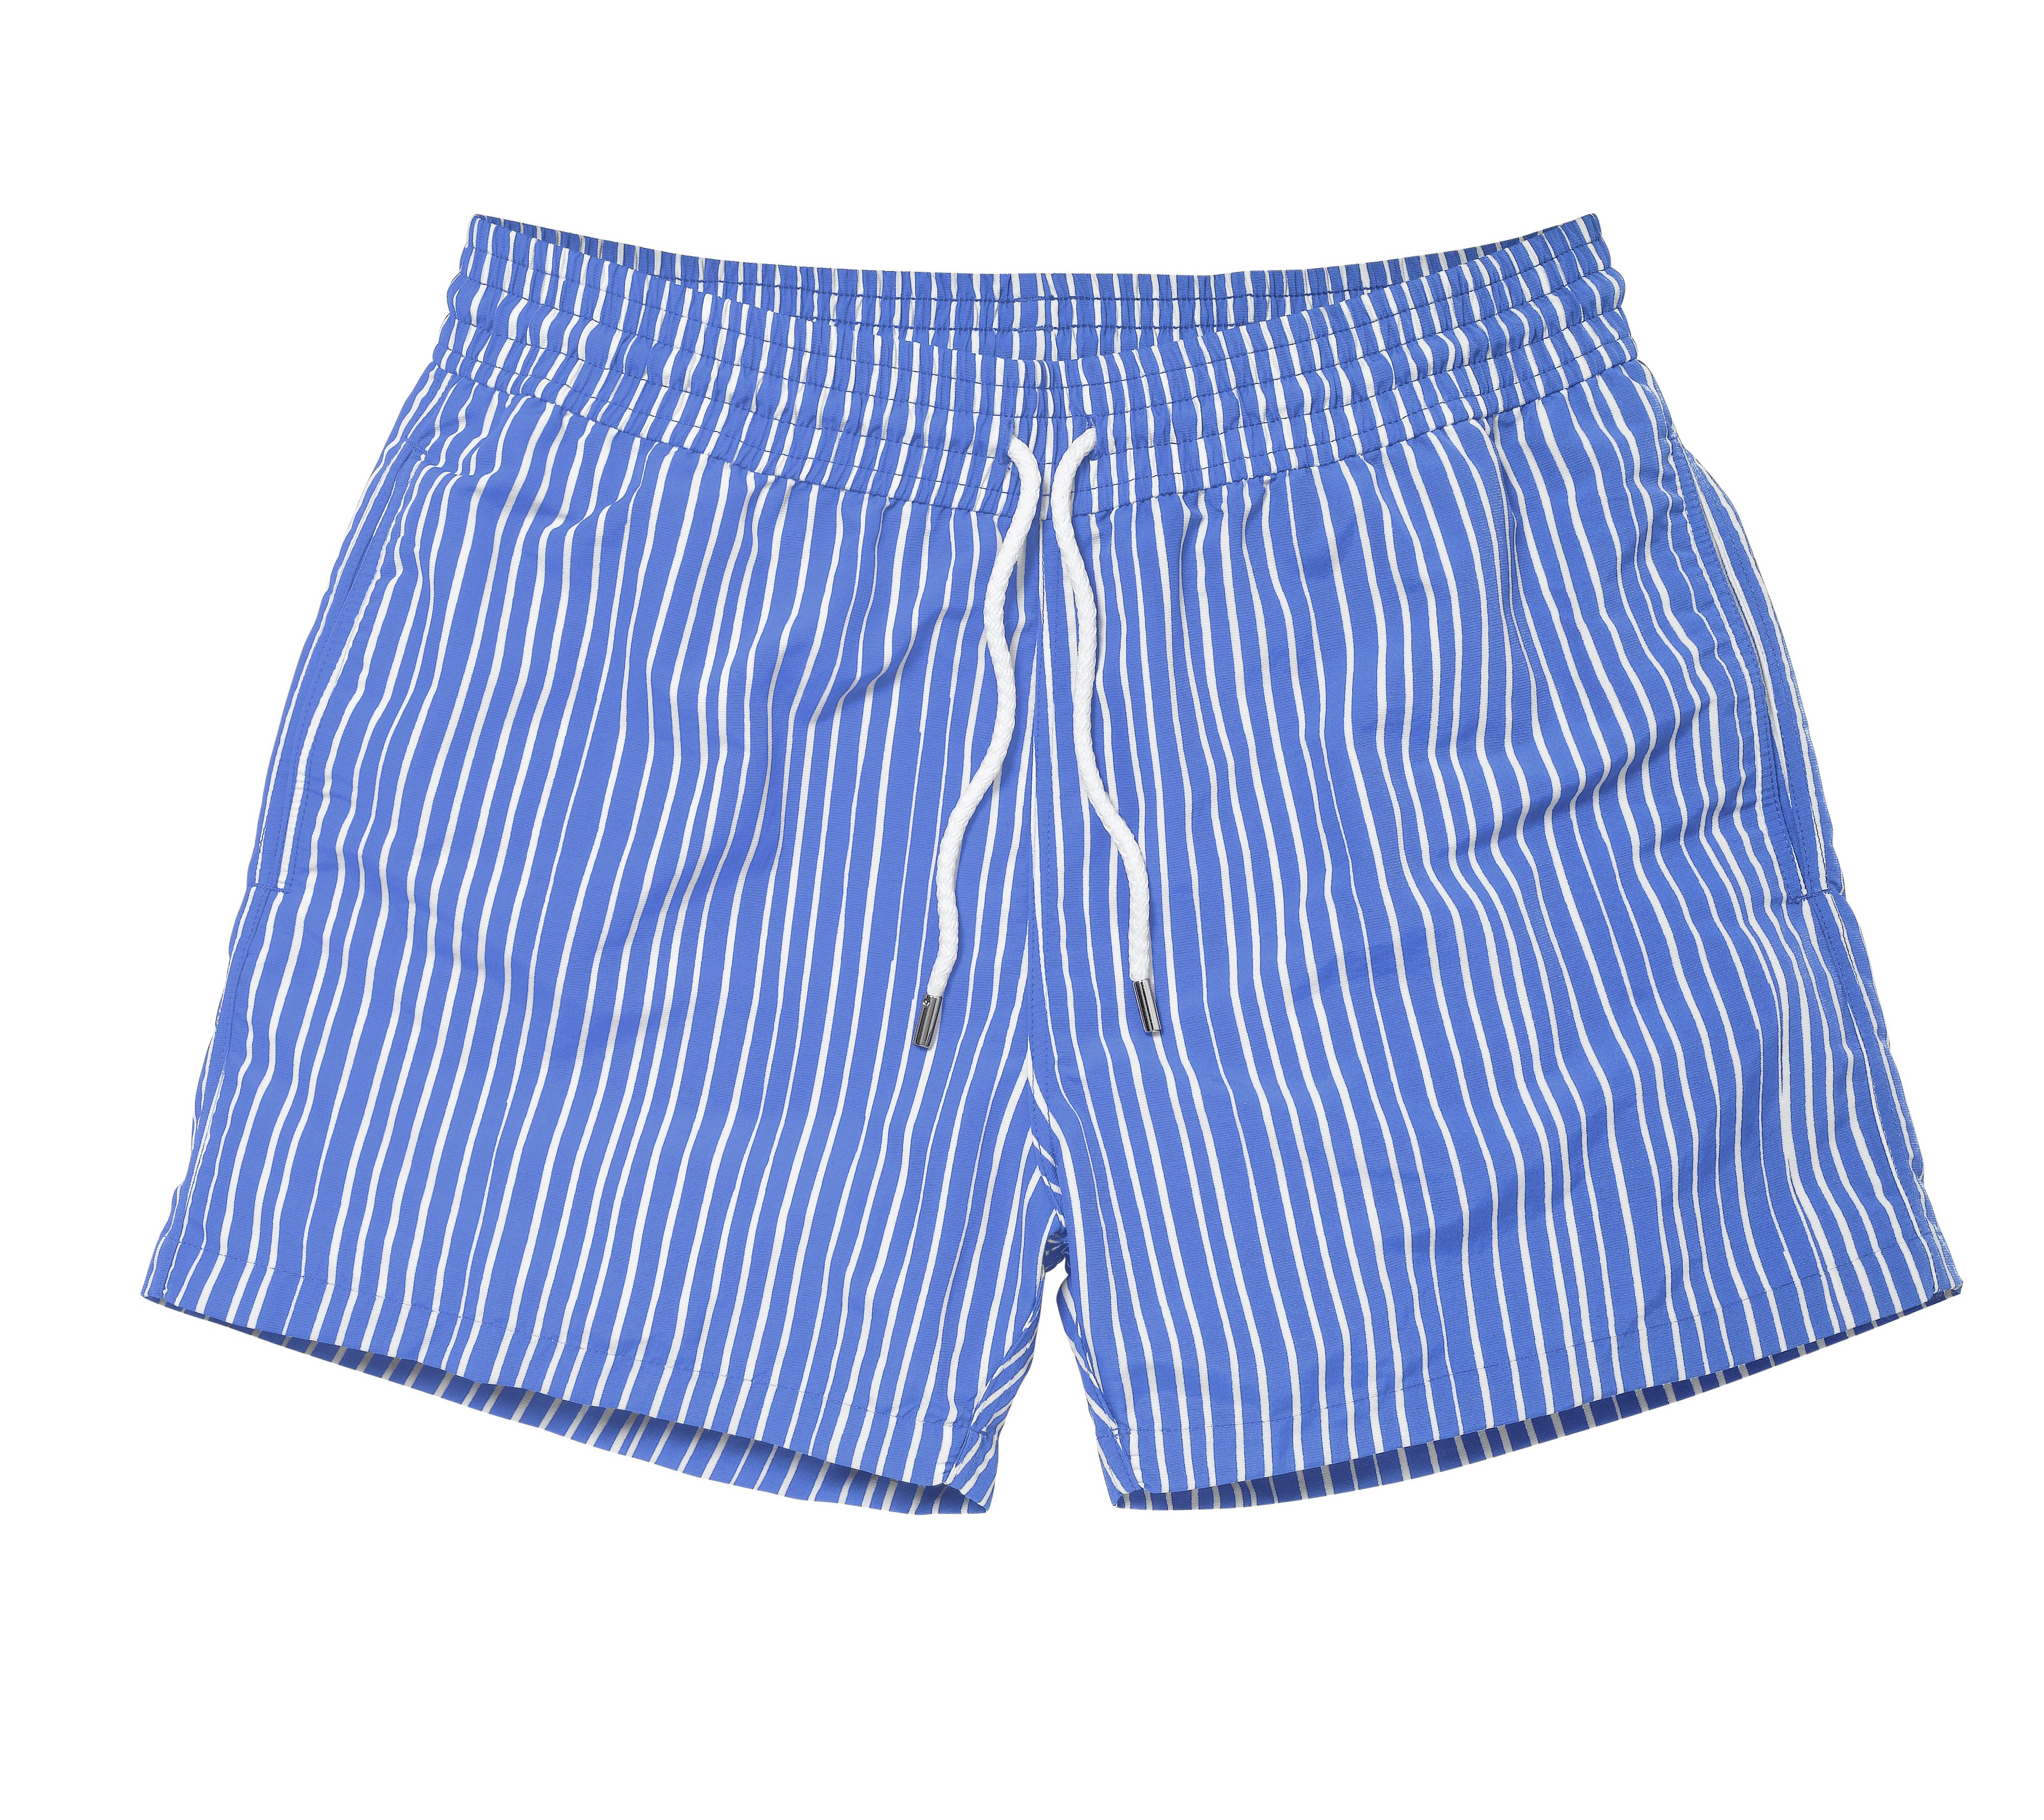 Sports Shorts Tracos Large Bright Blue_White .jpg